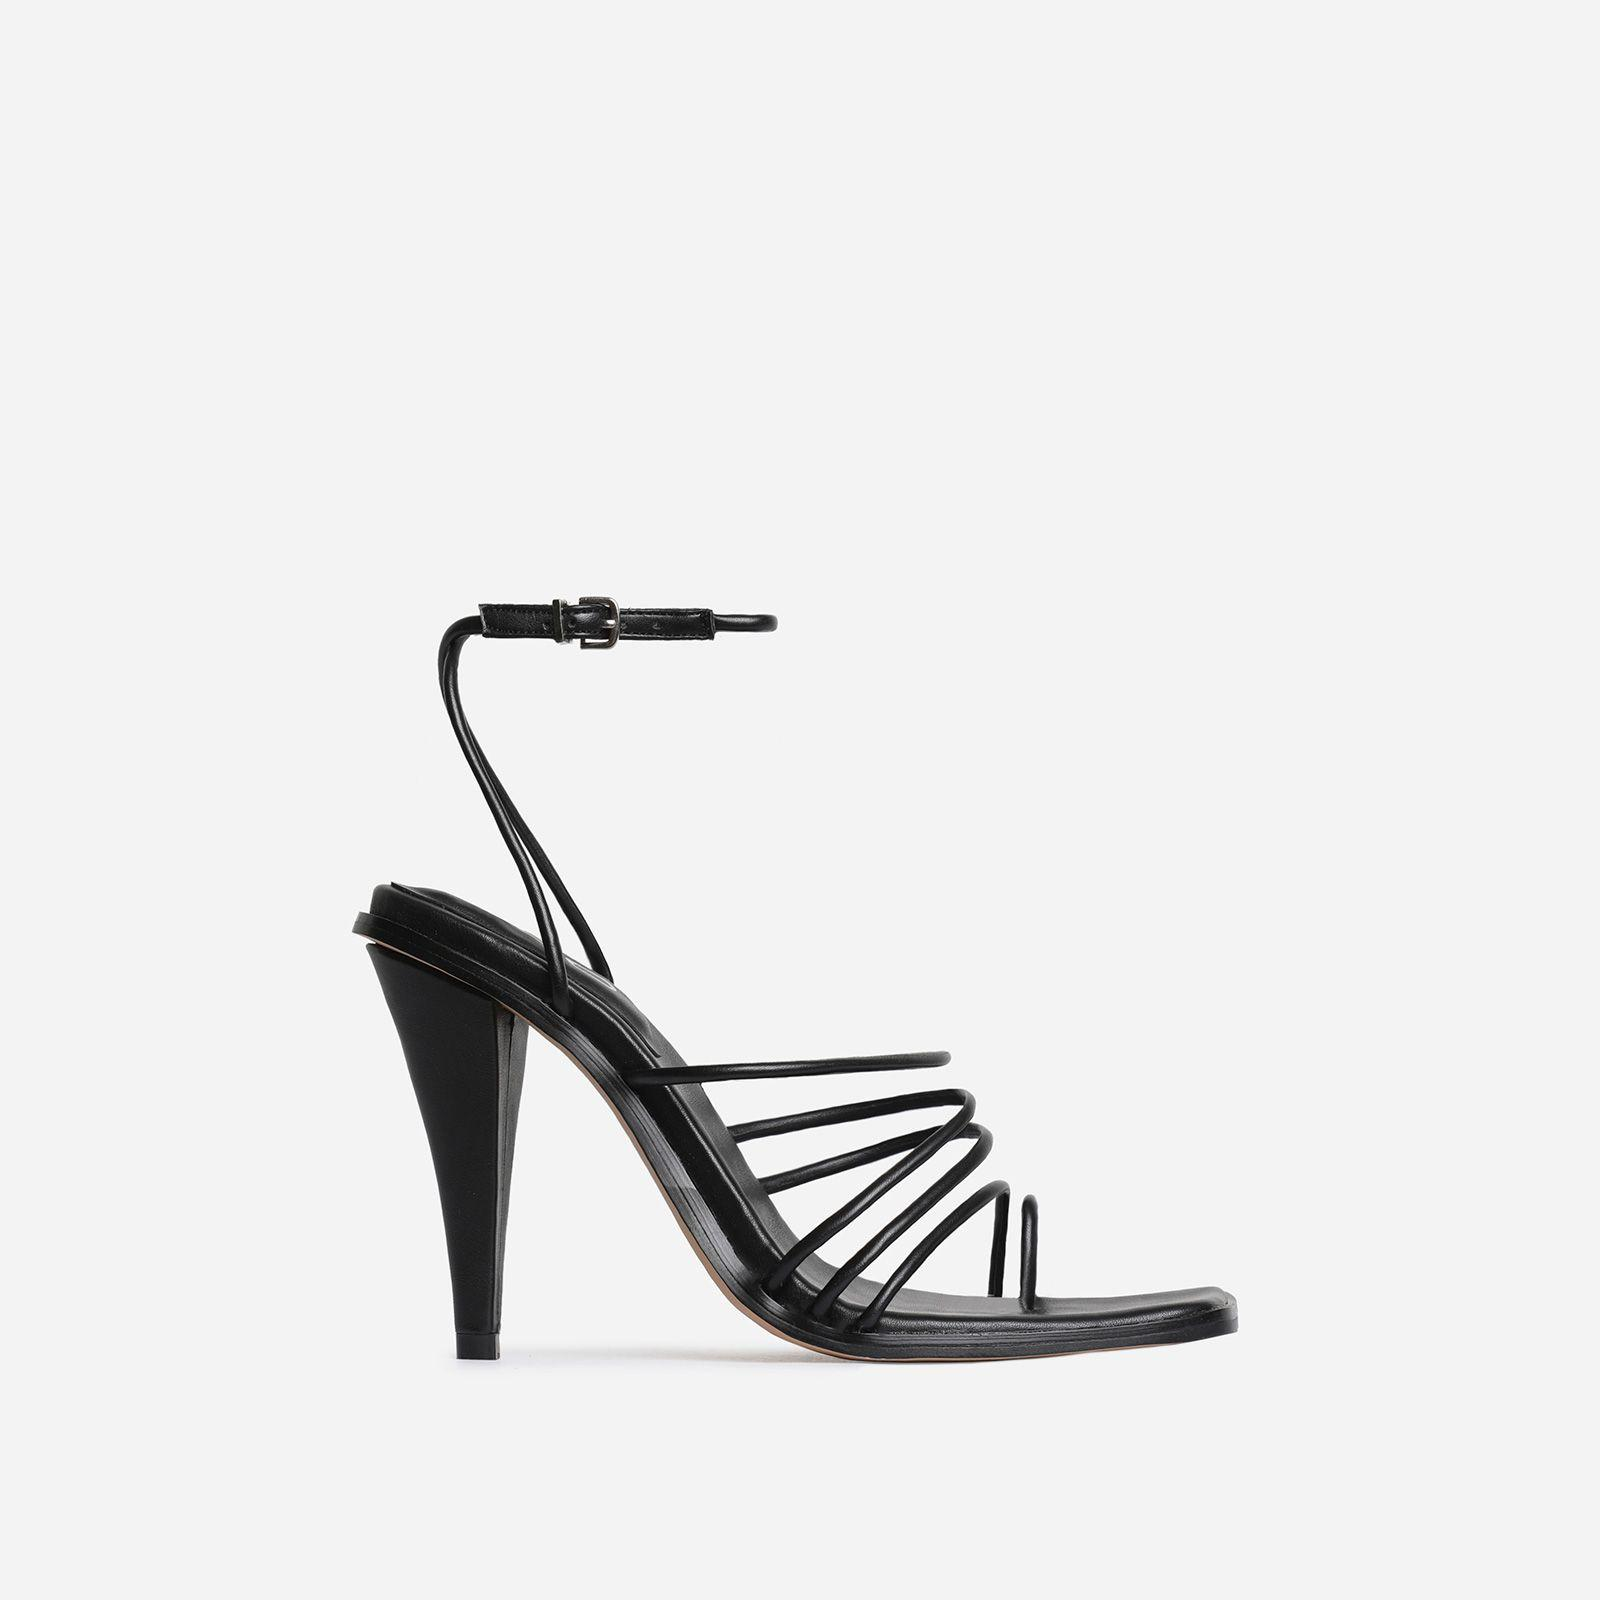 Amory Square Toe Strappy Heel In Black Faux Leather Image 1